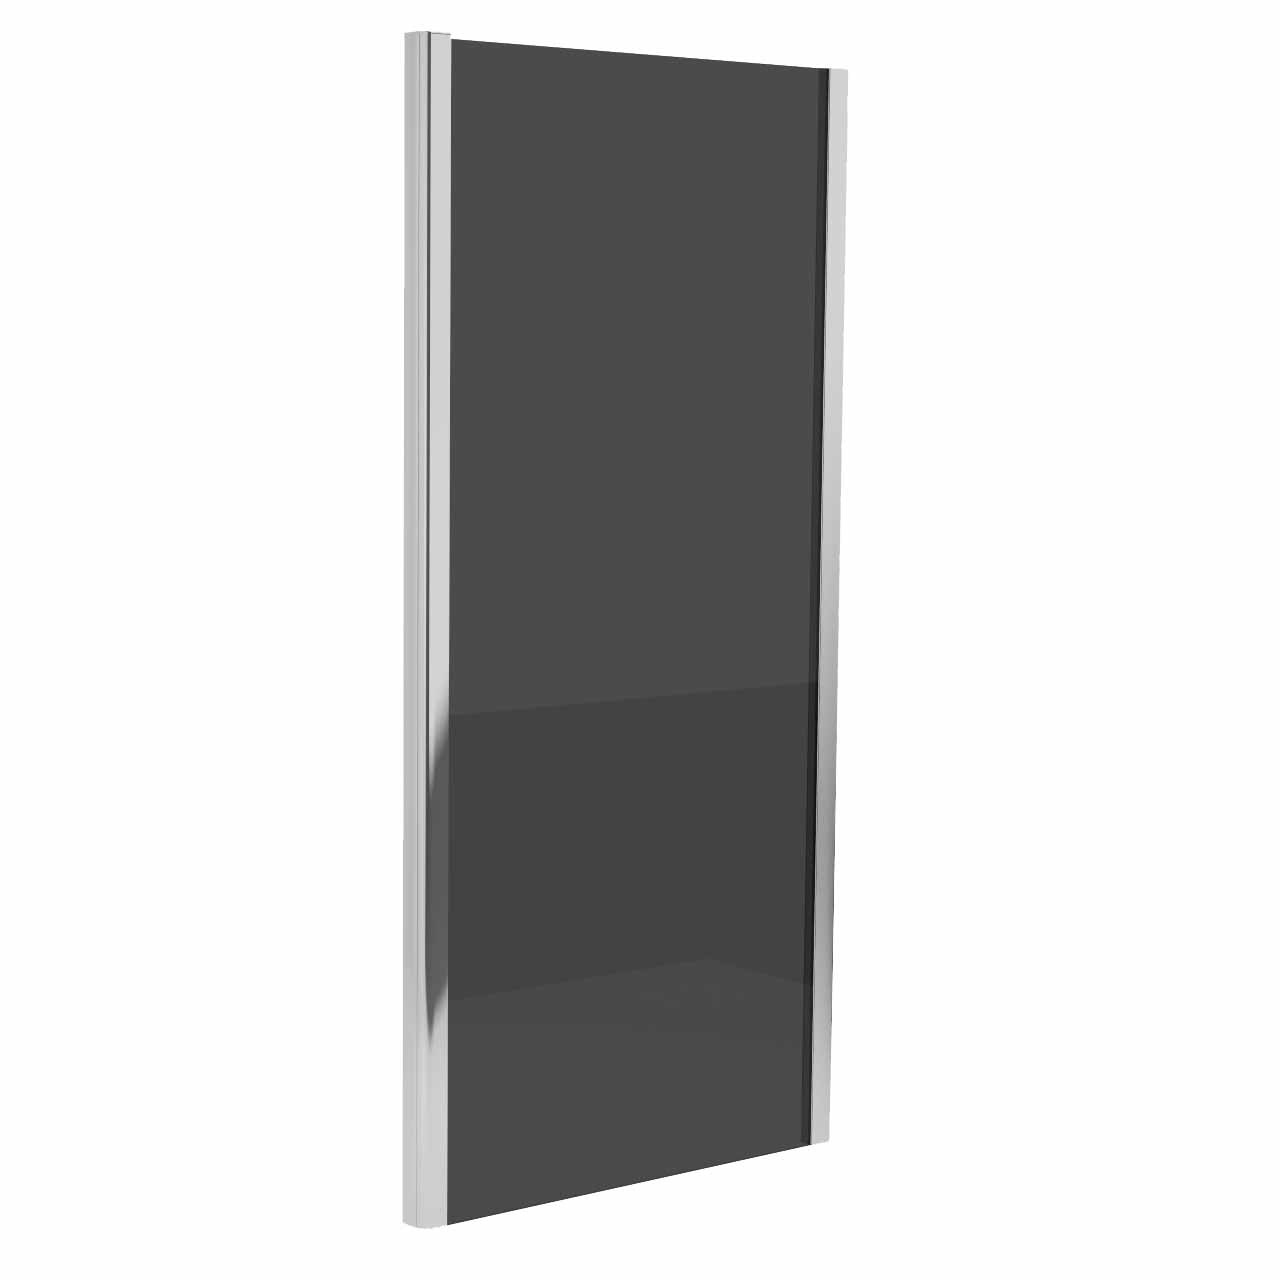 Series 9 900 x 900 Tinted Hinged Door Enclosure